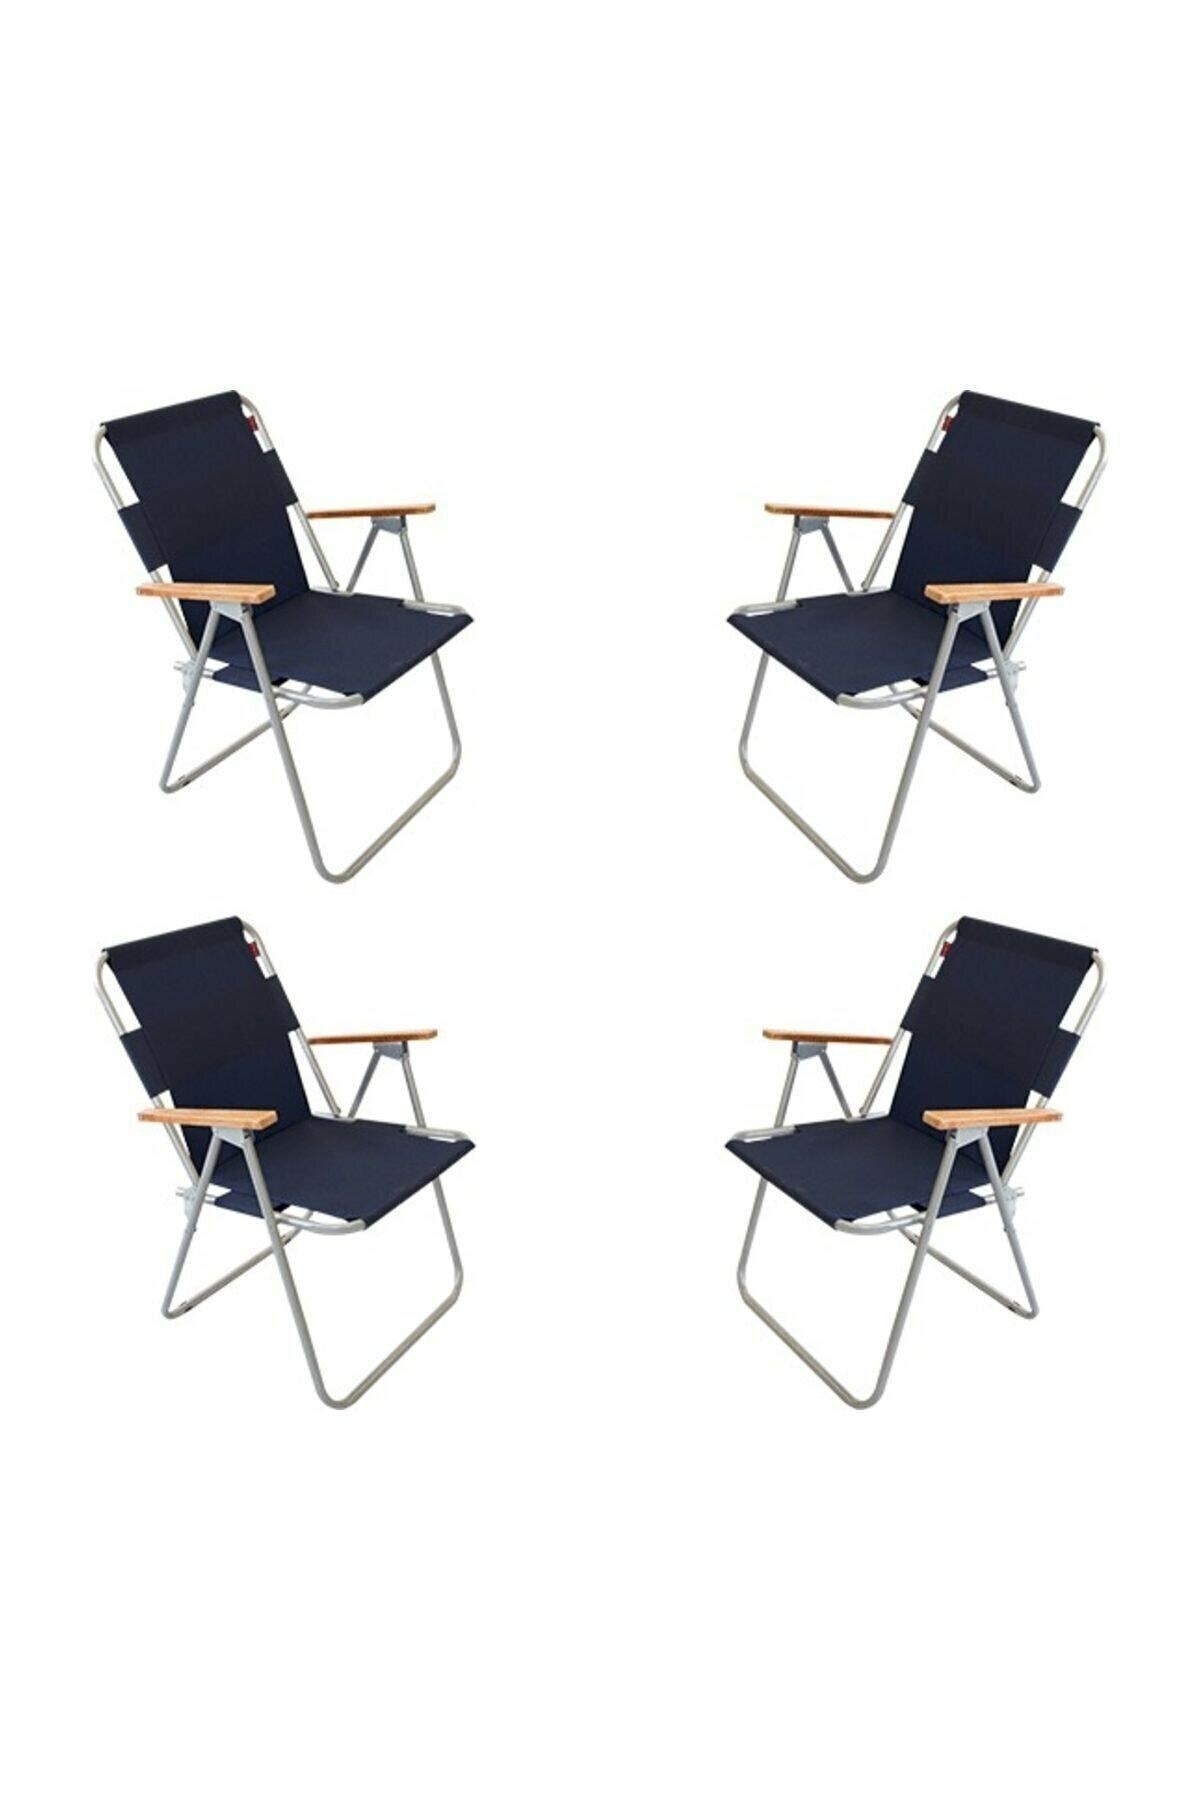 Bofigo 4 Pieces Folding Chair Camping Chair Balcony Chair Foldable Picnic and Garden Chair Navy Blue